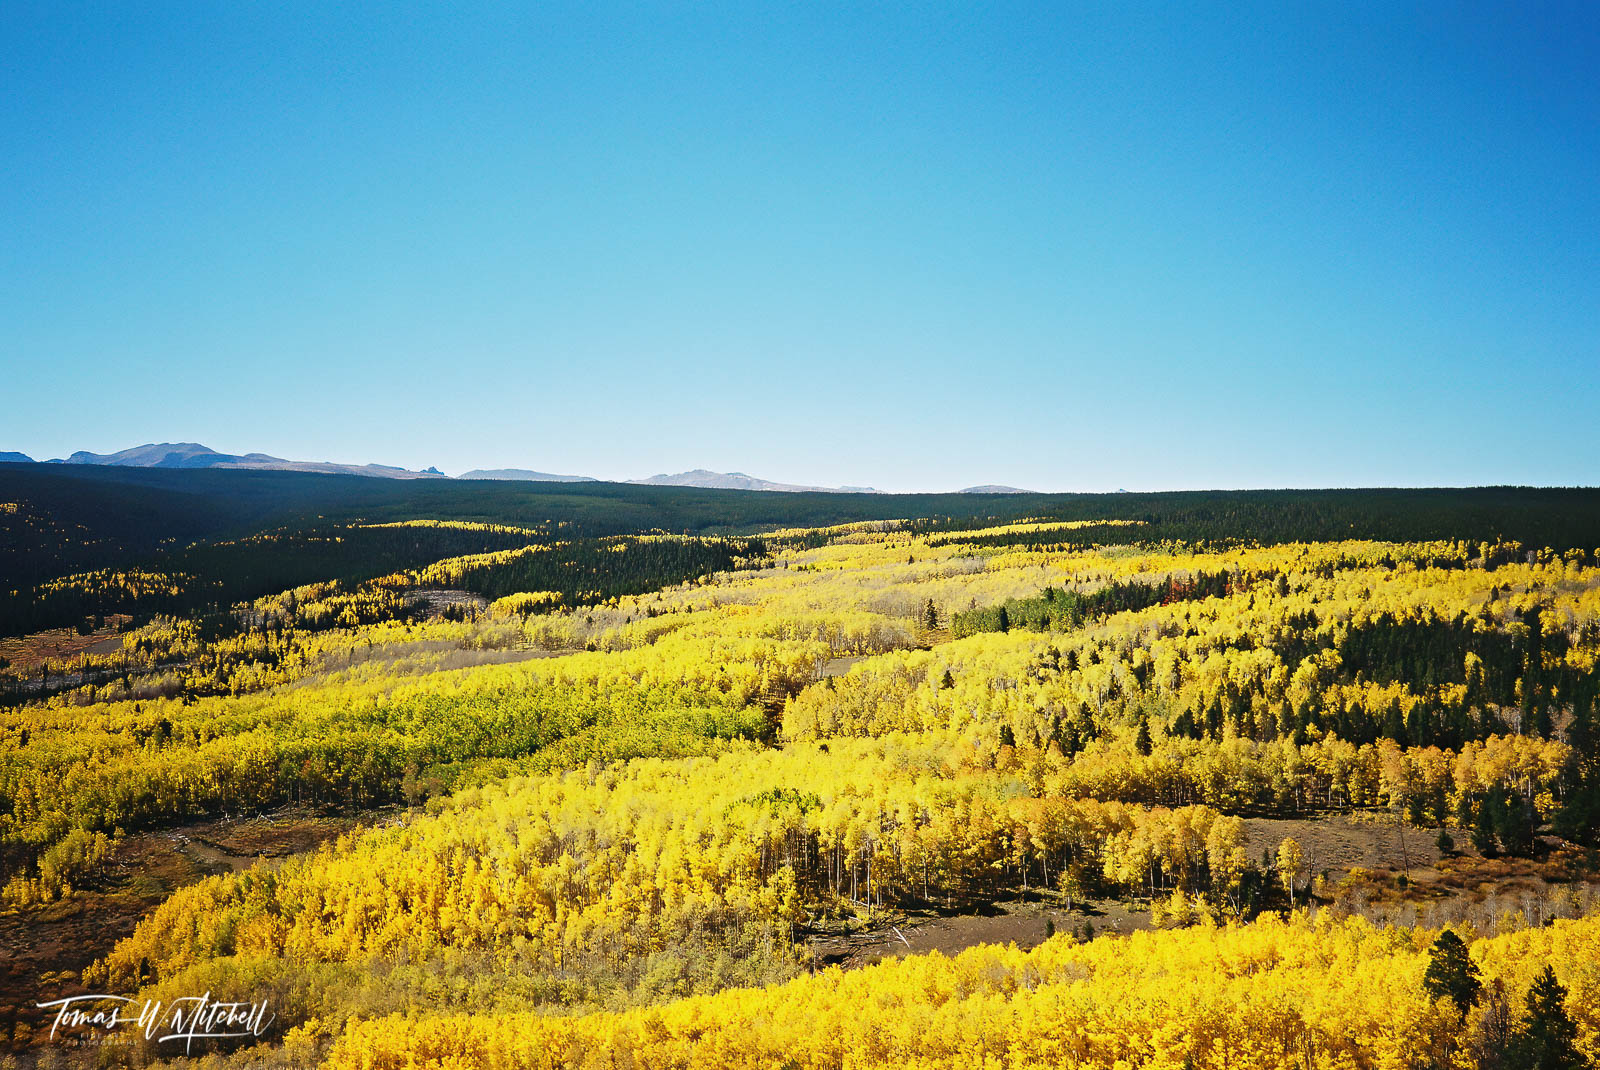 limited edition, fine art, prints, photograph, film, pentax, uinta mountains, wasatch cache national forest, forest, mountains, quaking aspens, lodge pole pine, high uinta's, golden, fall, autumn, uta, photo